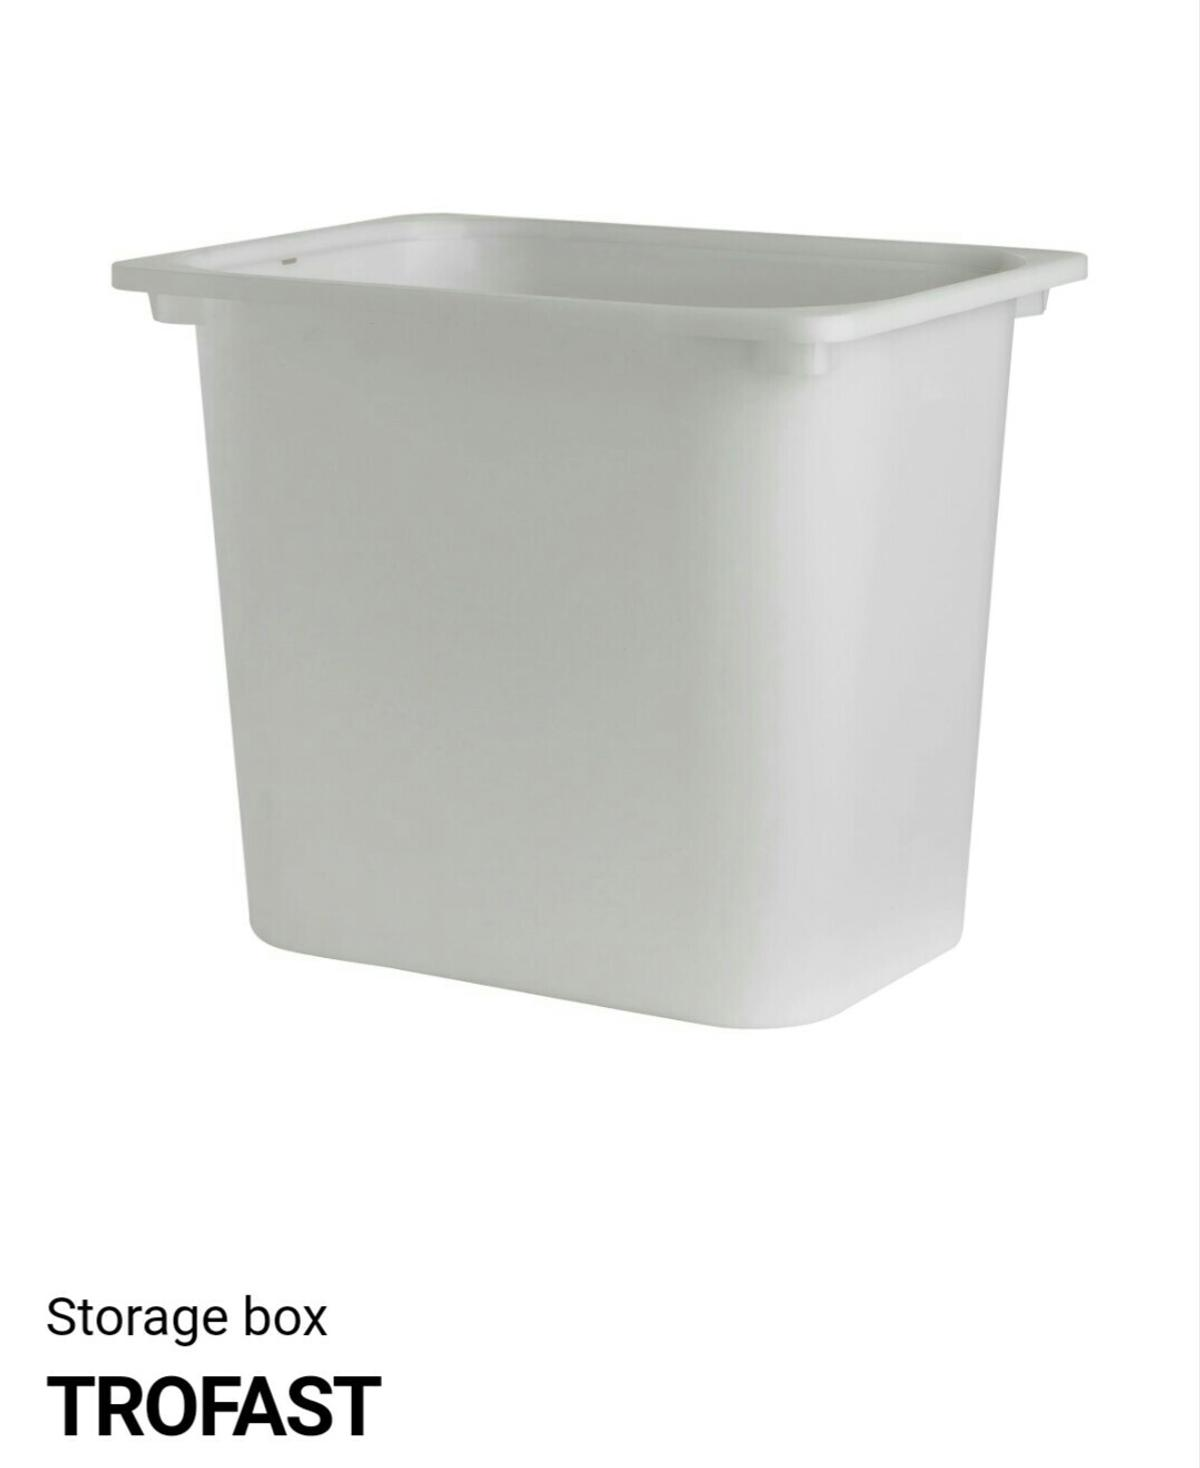 2 Ikea Trofast Storage Bo And Lids